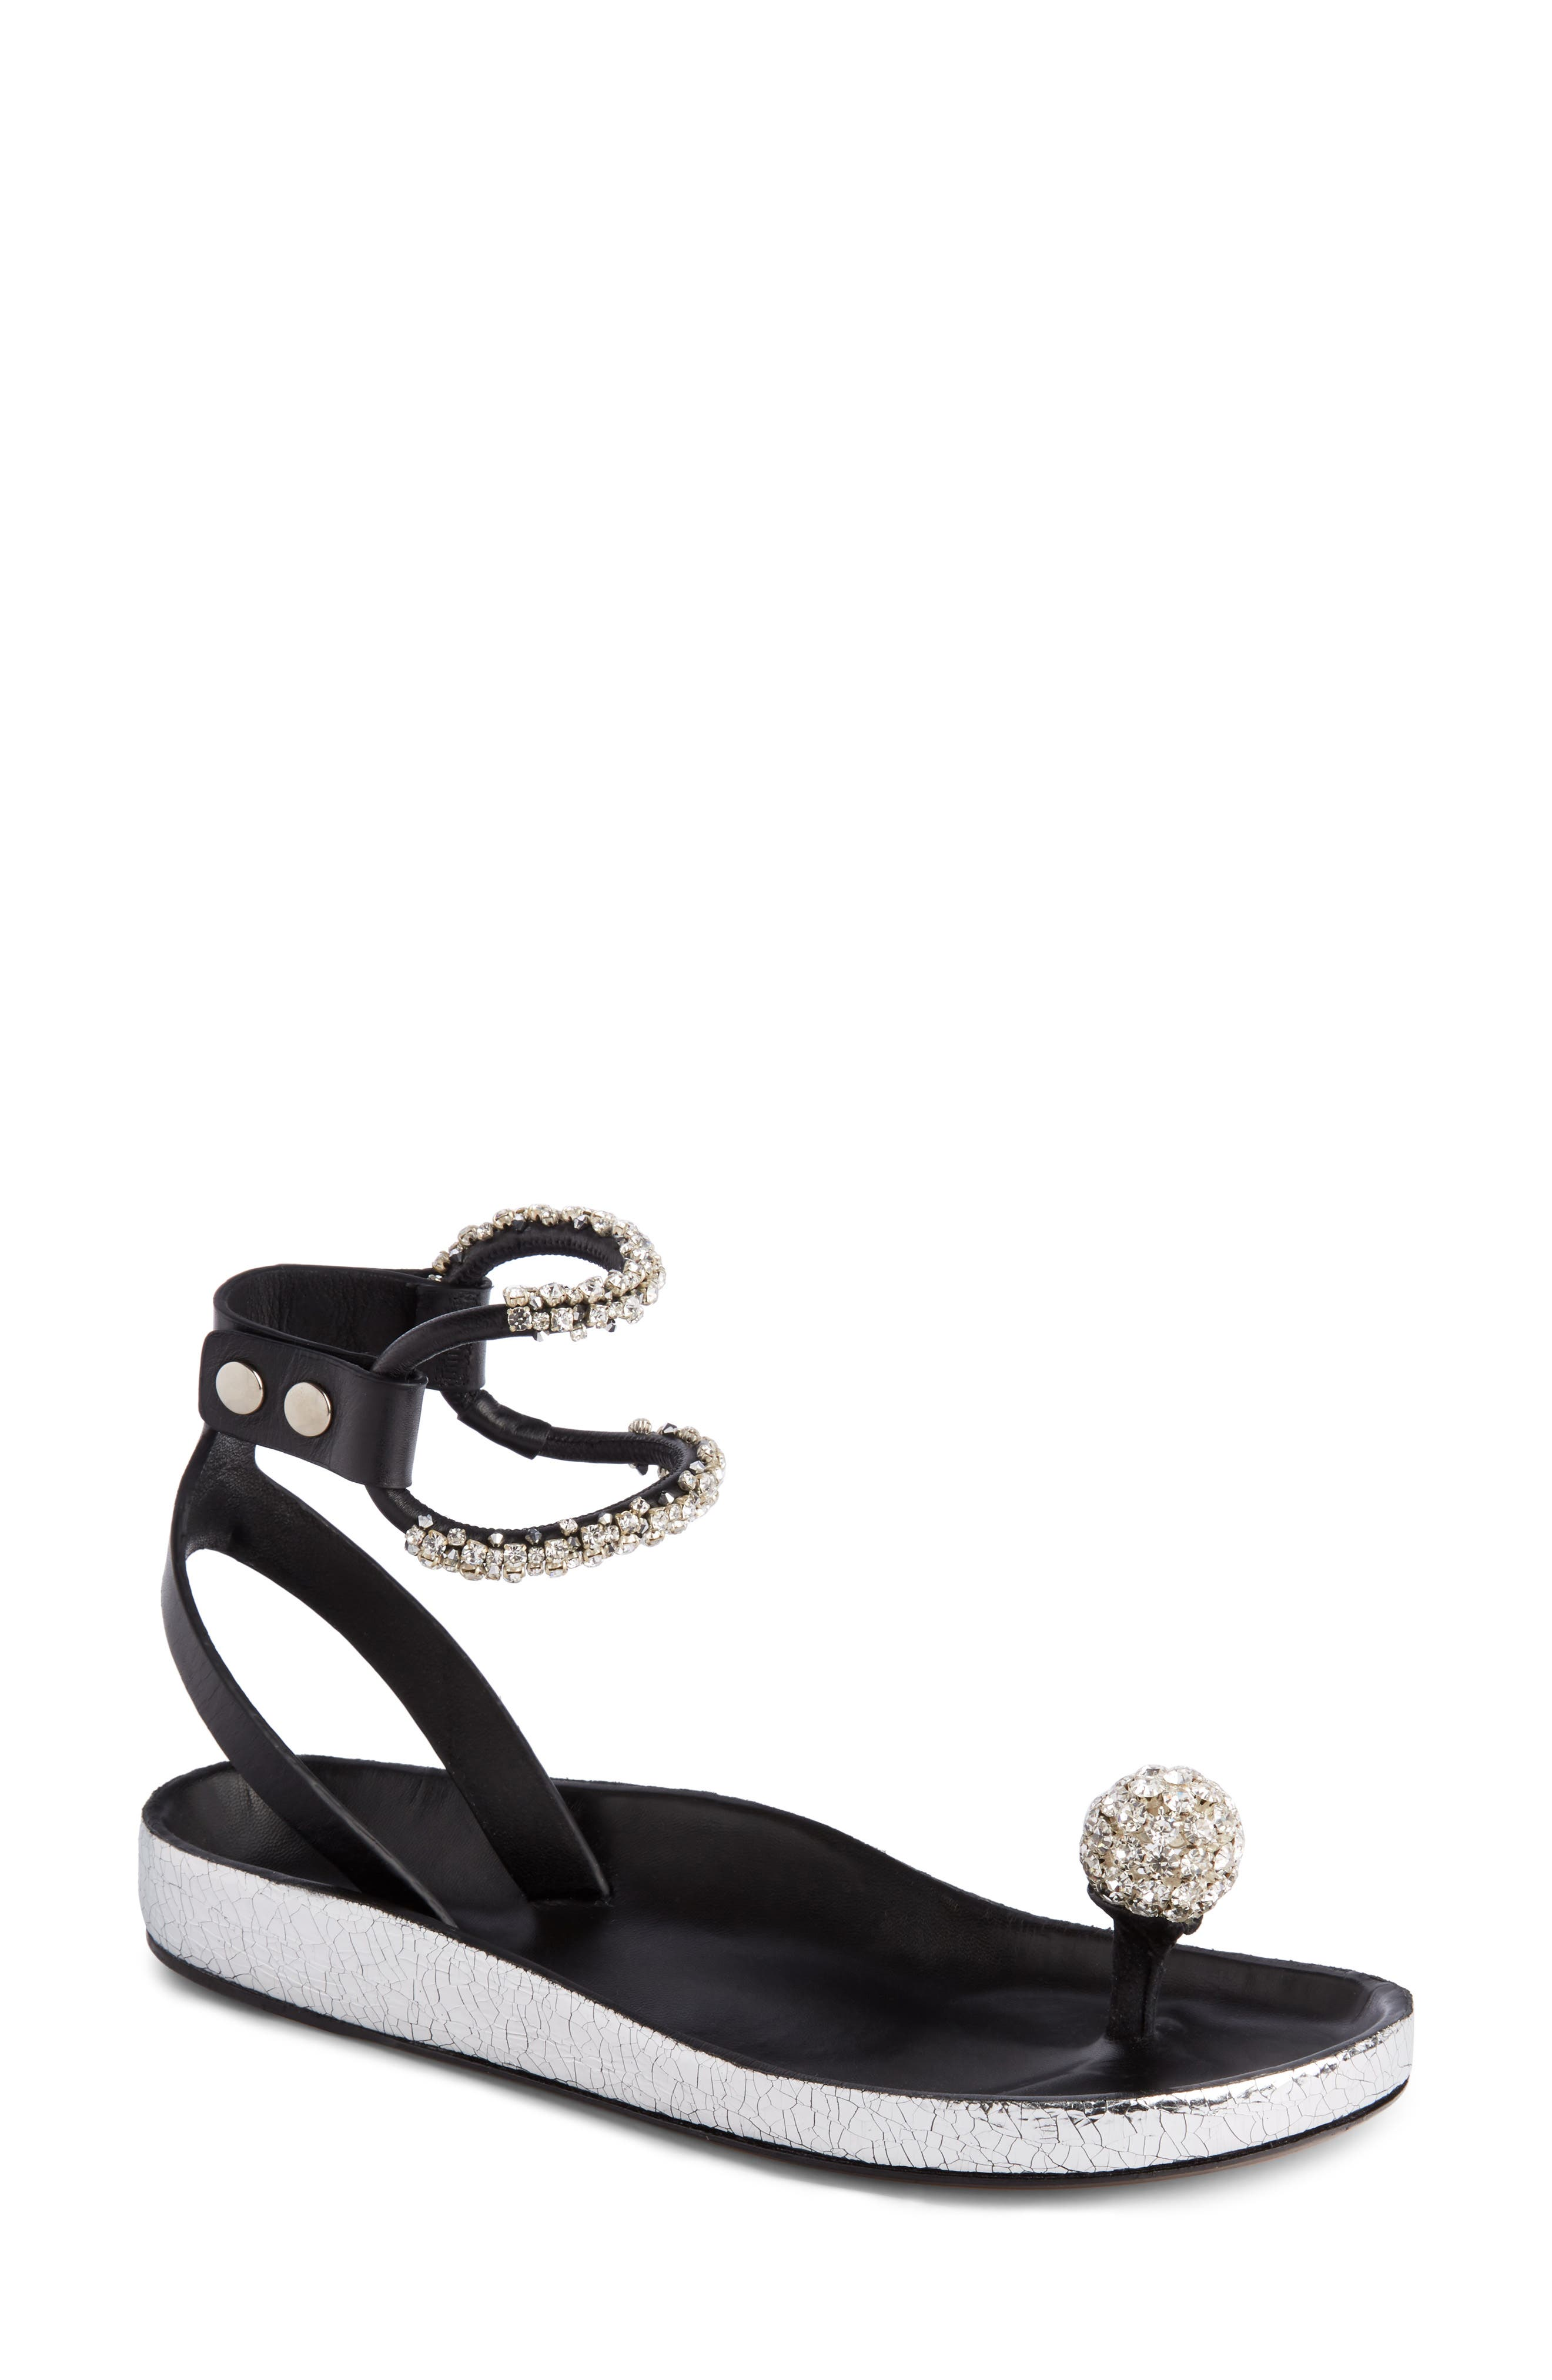 Ecly Crystal Ball Sandal,                         Main,                         color,